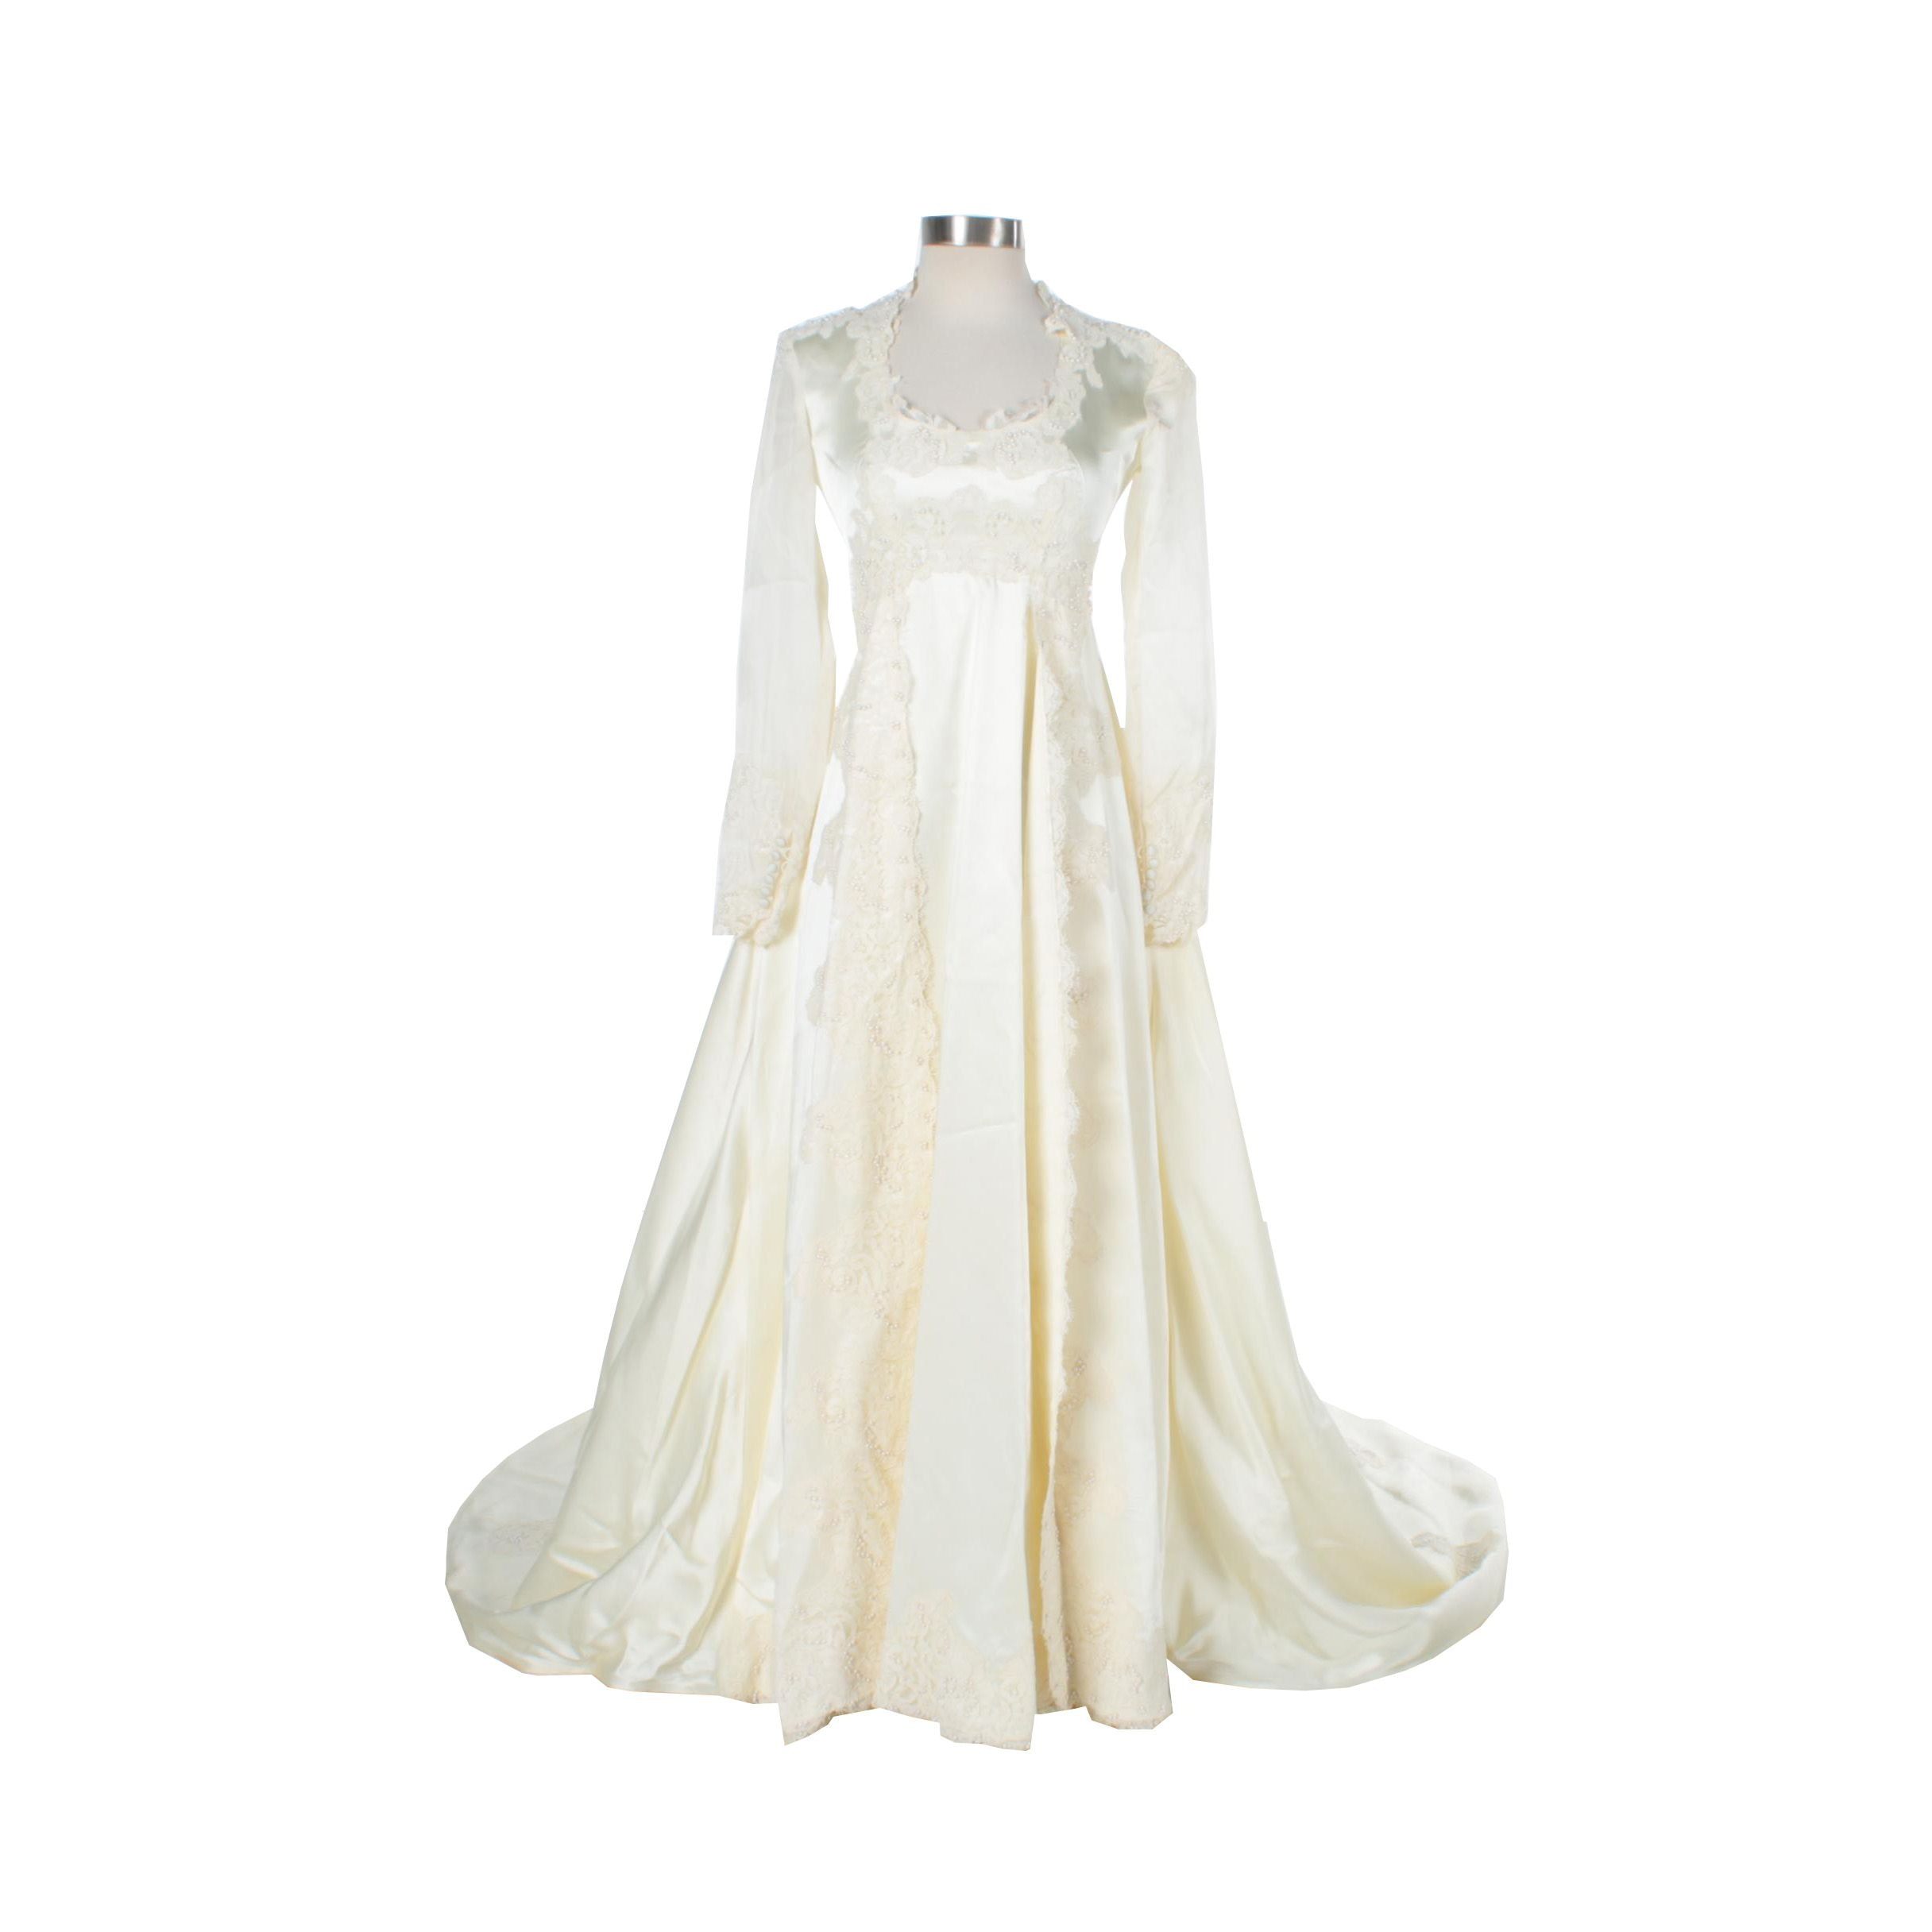 Vintage Ivory Satin and Lace Wedding Gown